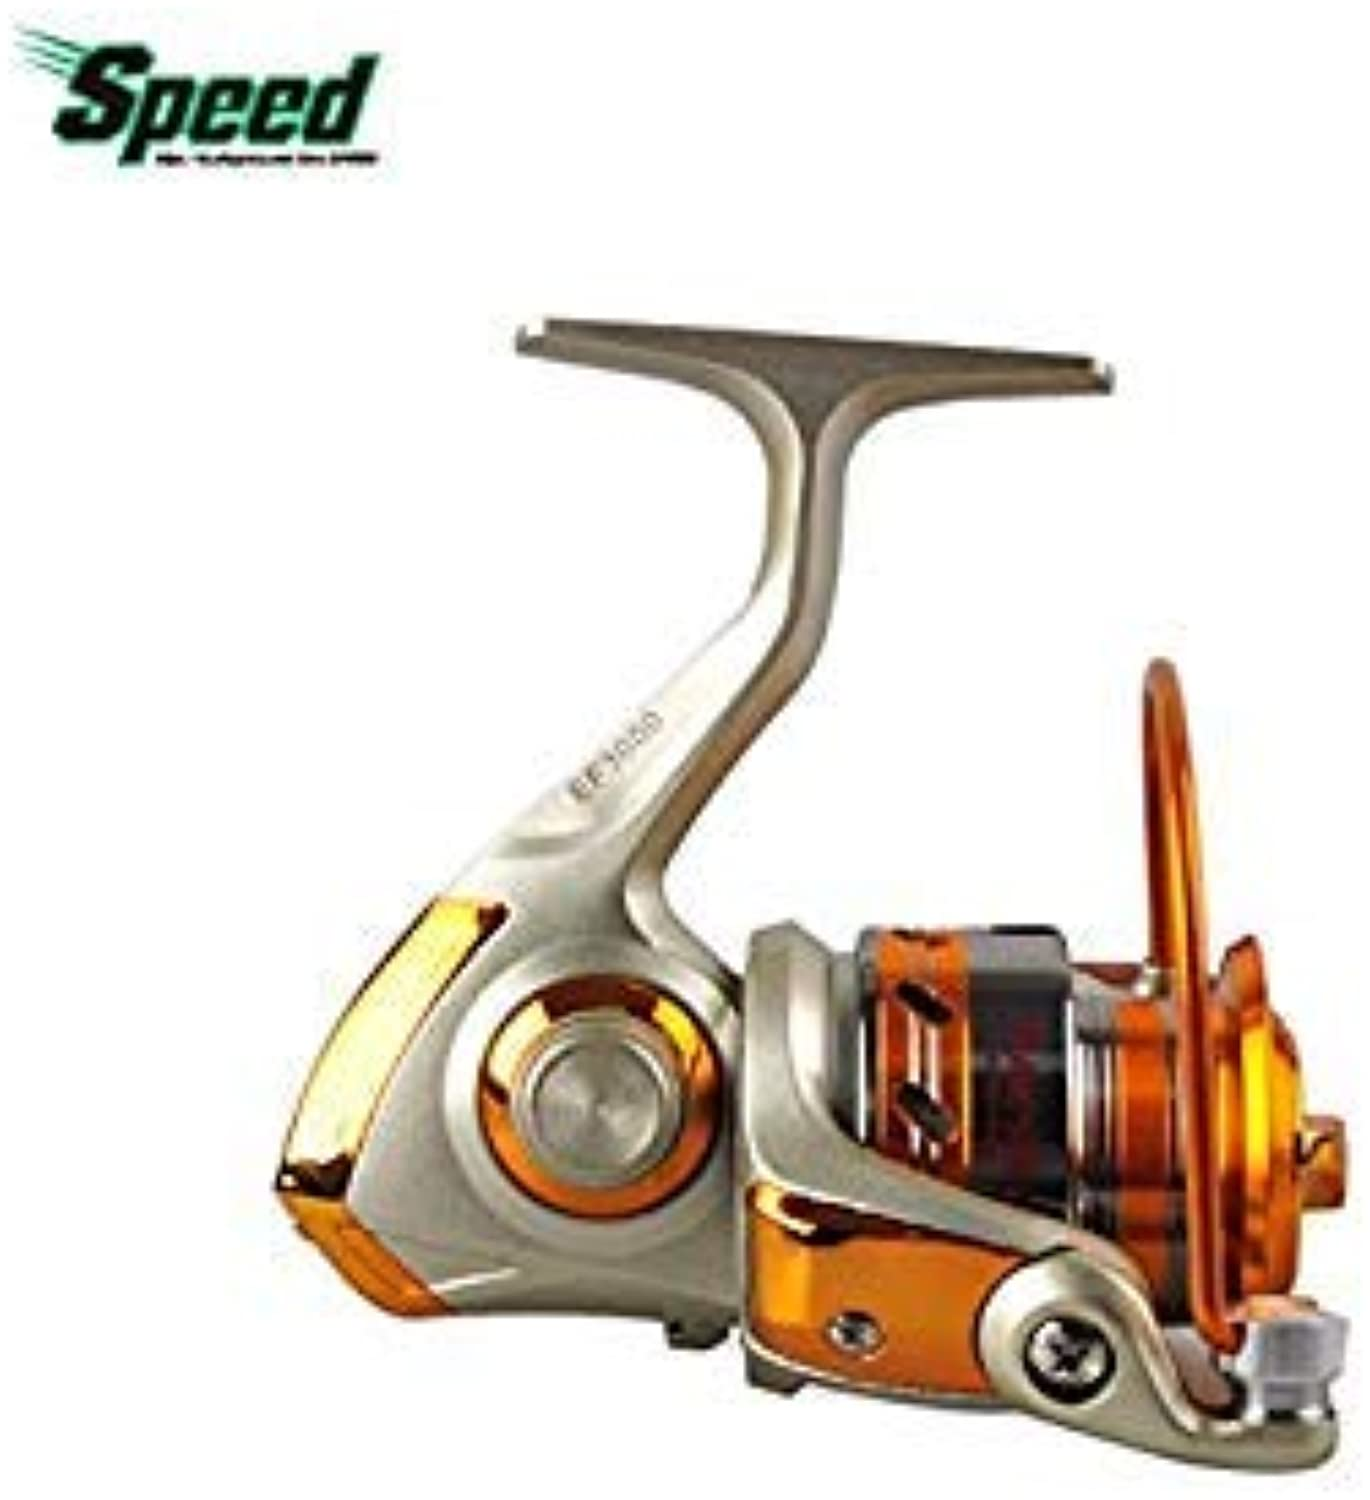 As pic, 10, 4000 Series   New Arrival 10BB Speed Ratio 5.5 1 Saltwater Spinning Wheel Trolling Spinning EF1000-7000 Ocean Sea Boat Ice Fishing Tackle Reel